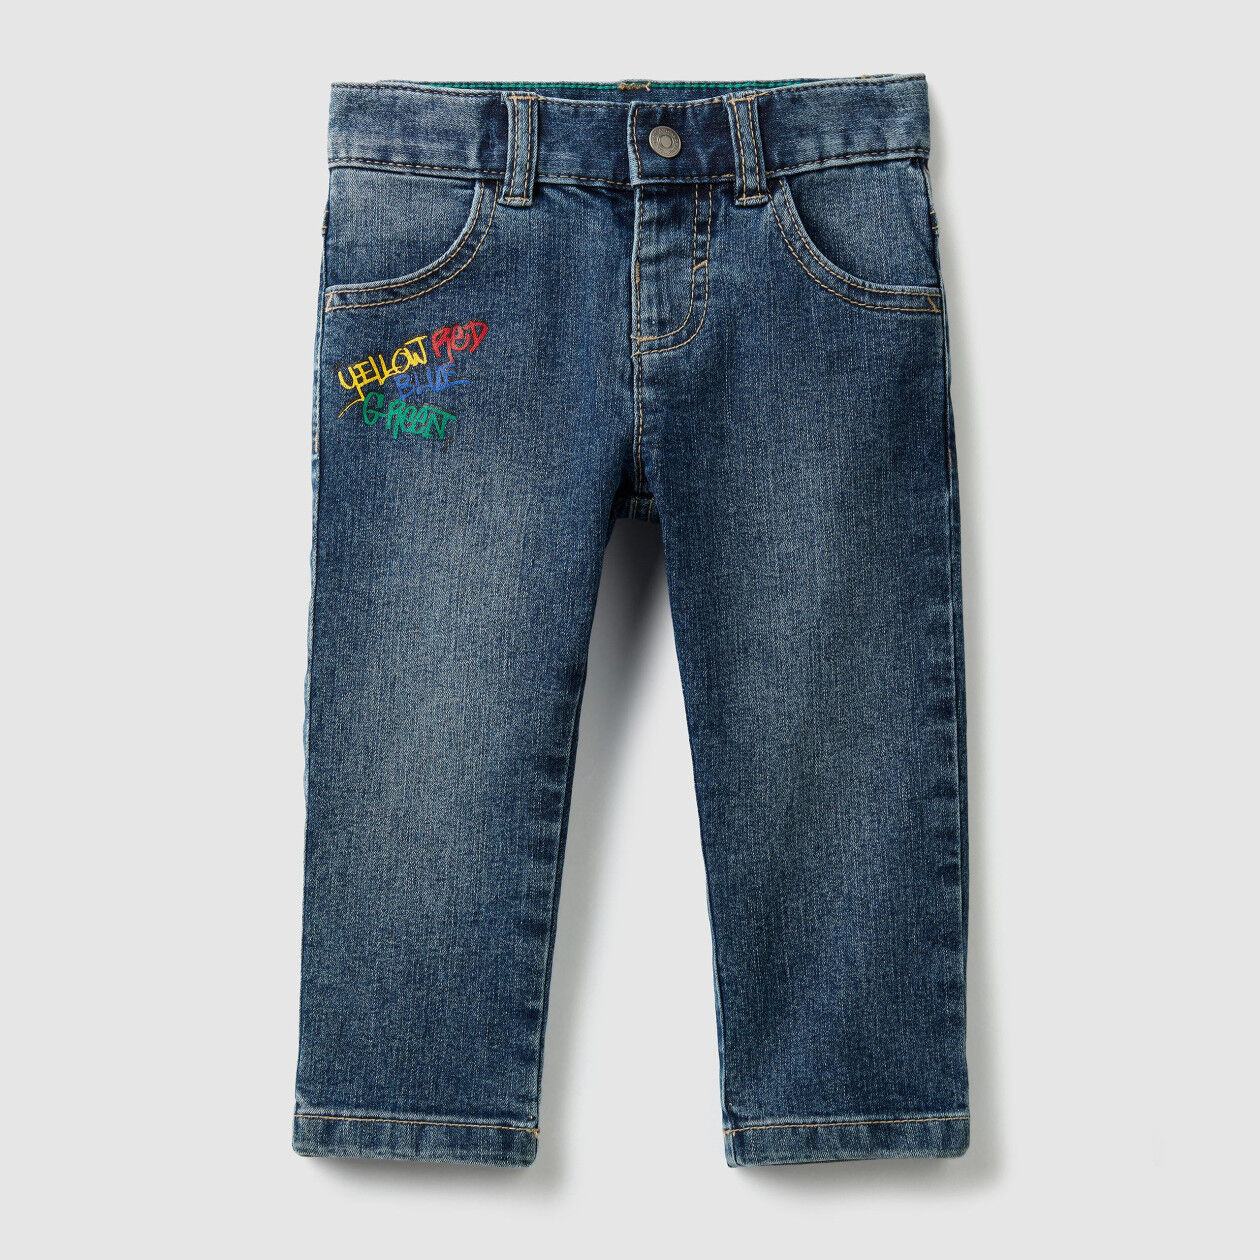 Jeans with print and embroidery